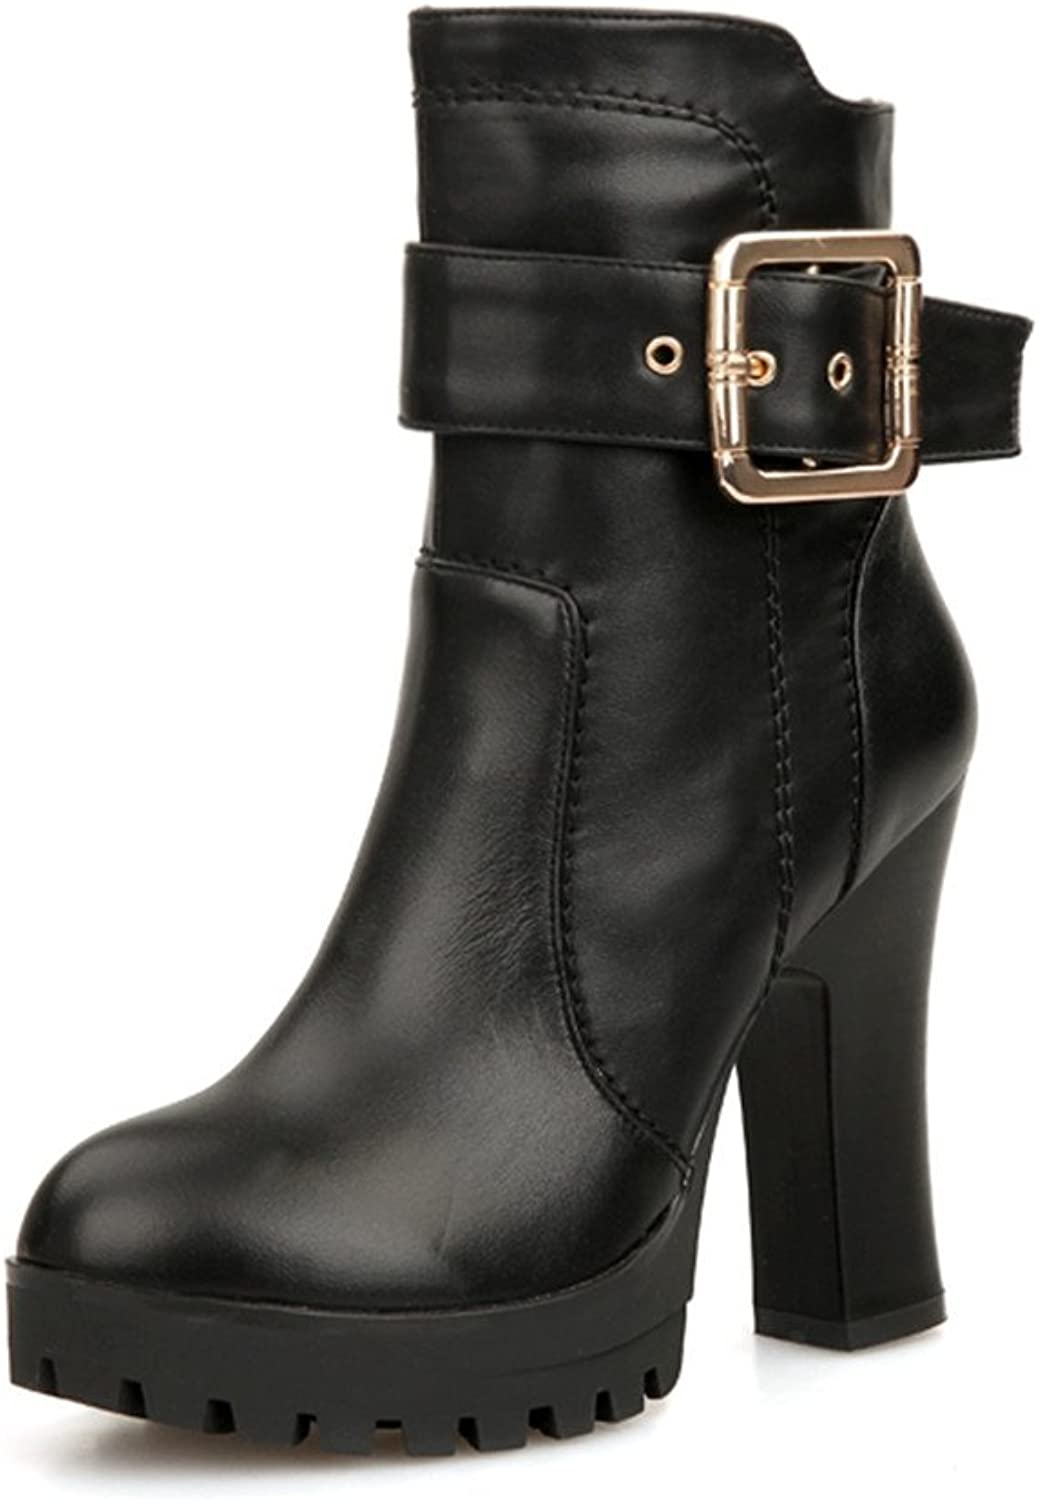 Nine Seven Women's Genuine Leather Round Toe Platform High Heel Black Ankle Handmade Boot with Buckle Accent